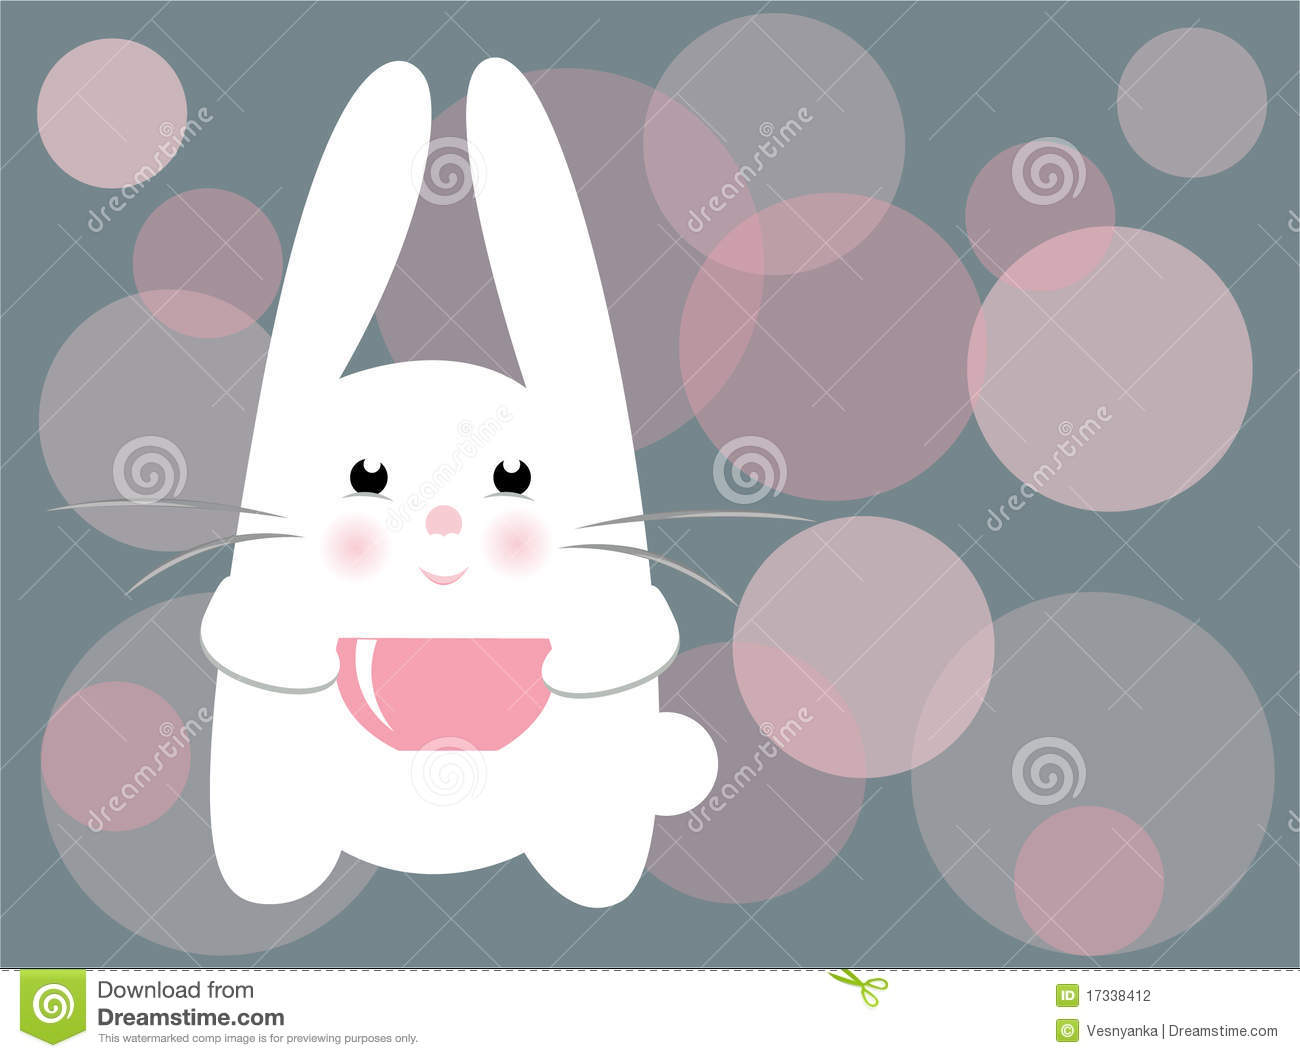 Cute White Baby Rabbits Wallpapers Vector Cute Rabbit Stock Vector Illustration Of Glow